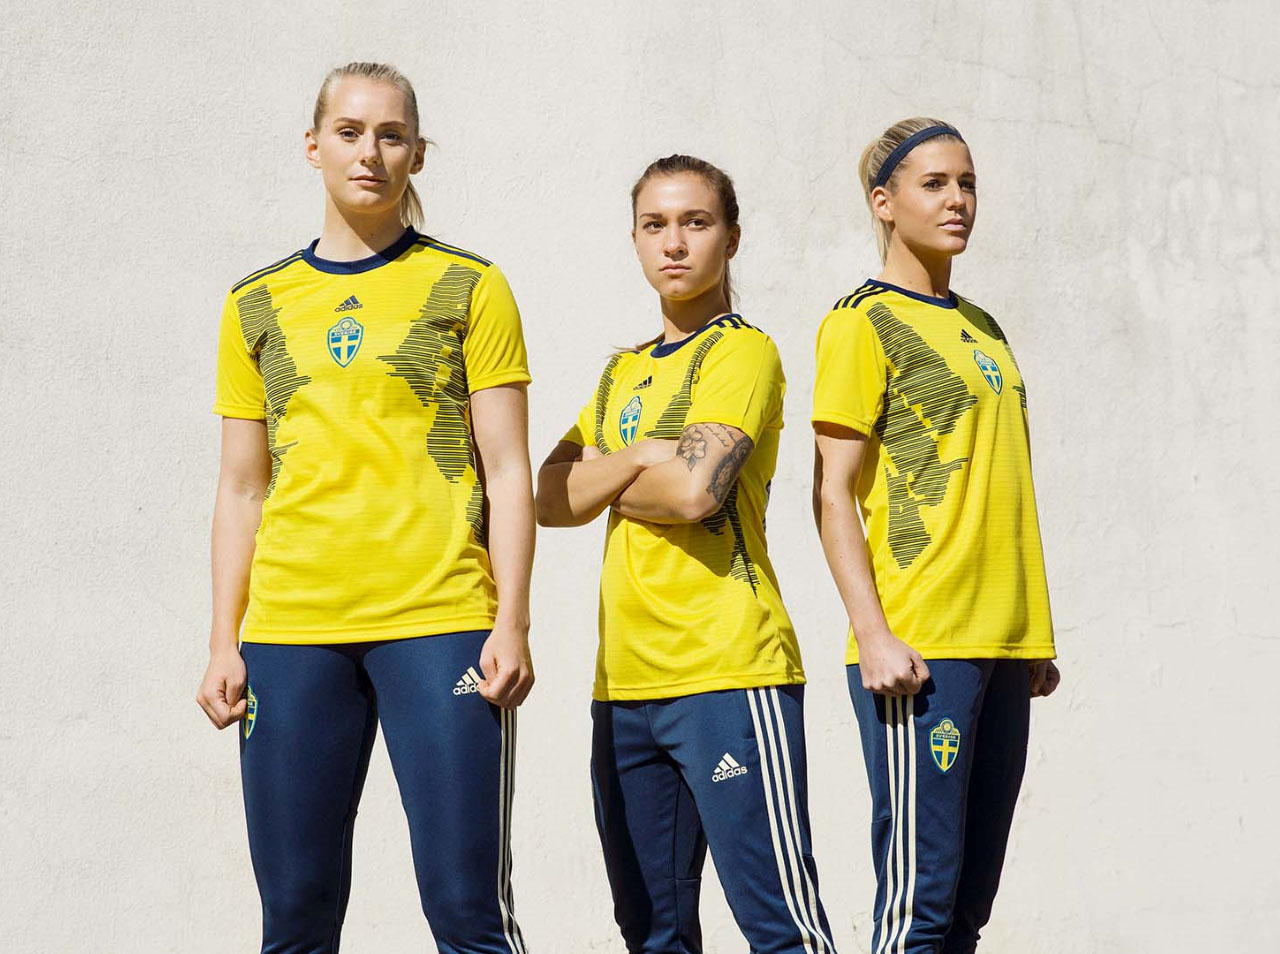 0355588ab9d Adidas Sweden 2019 Women s World Cup Kit Features Unique Numbers - All You  Need To Know